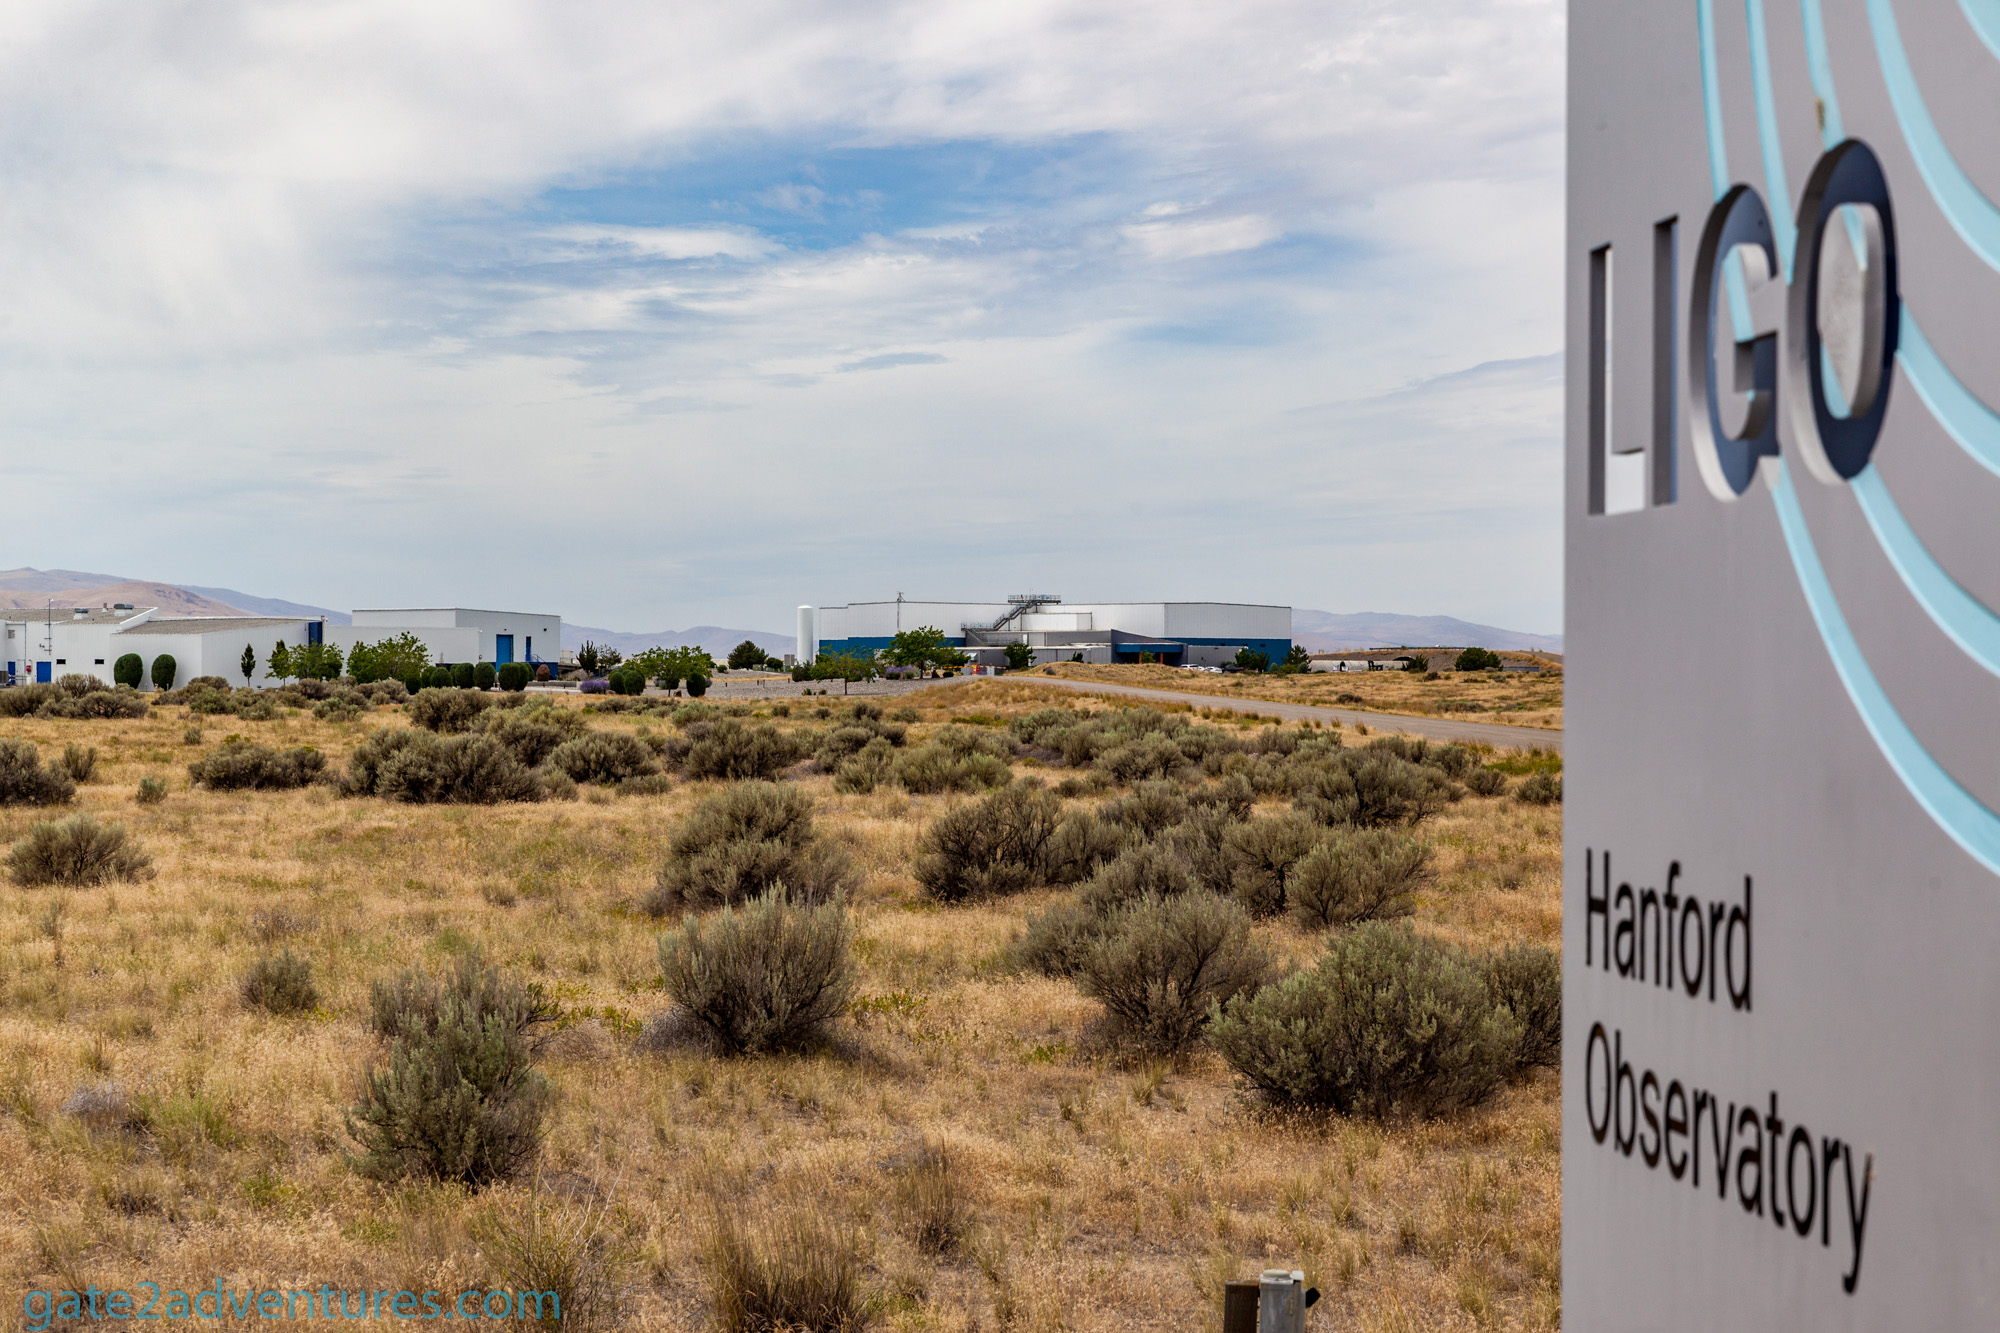 Laser Interferometer Gravitational-Wave Observatory (LIGO) in Hanford, WA